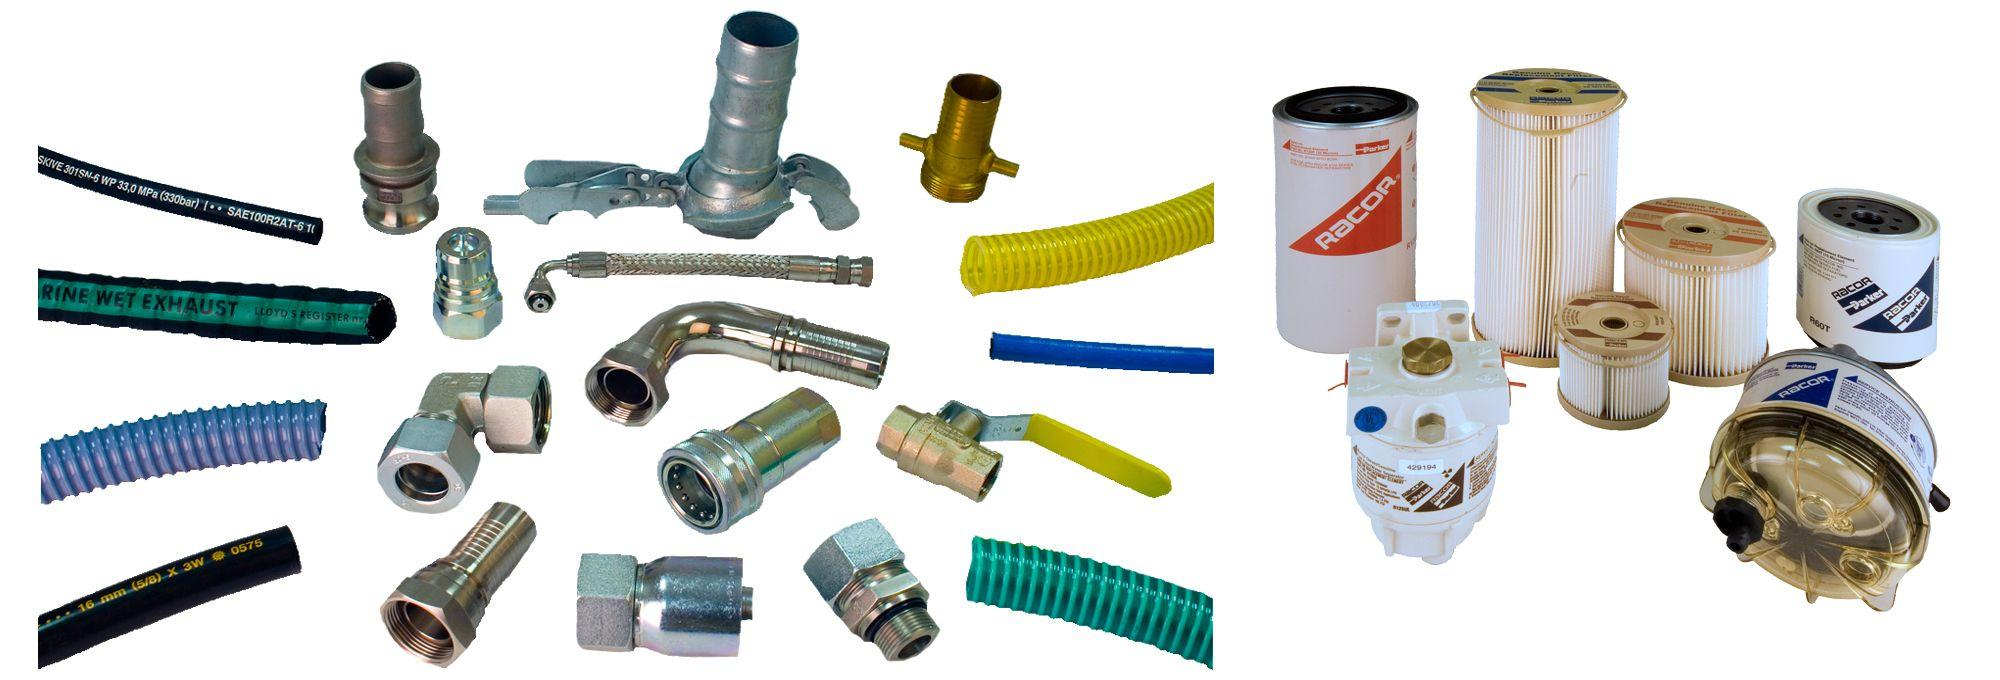 Hyphose - the Premier Supplier of Hose Products on the South